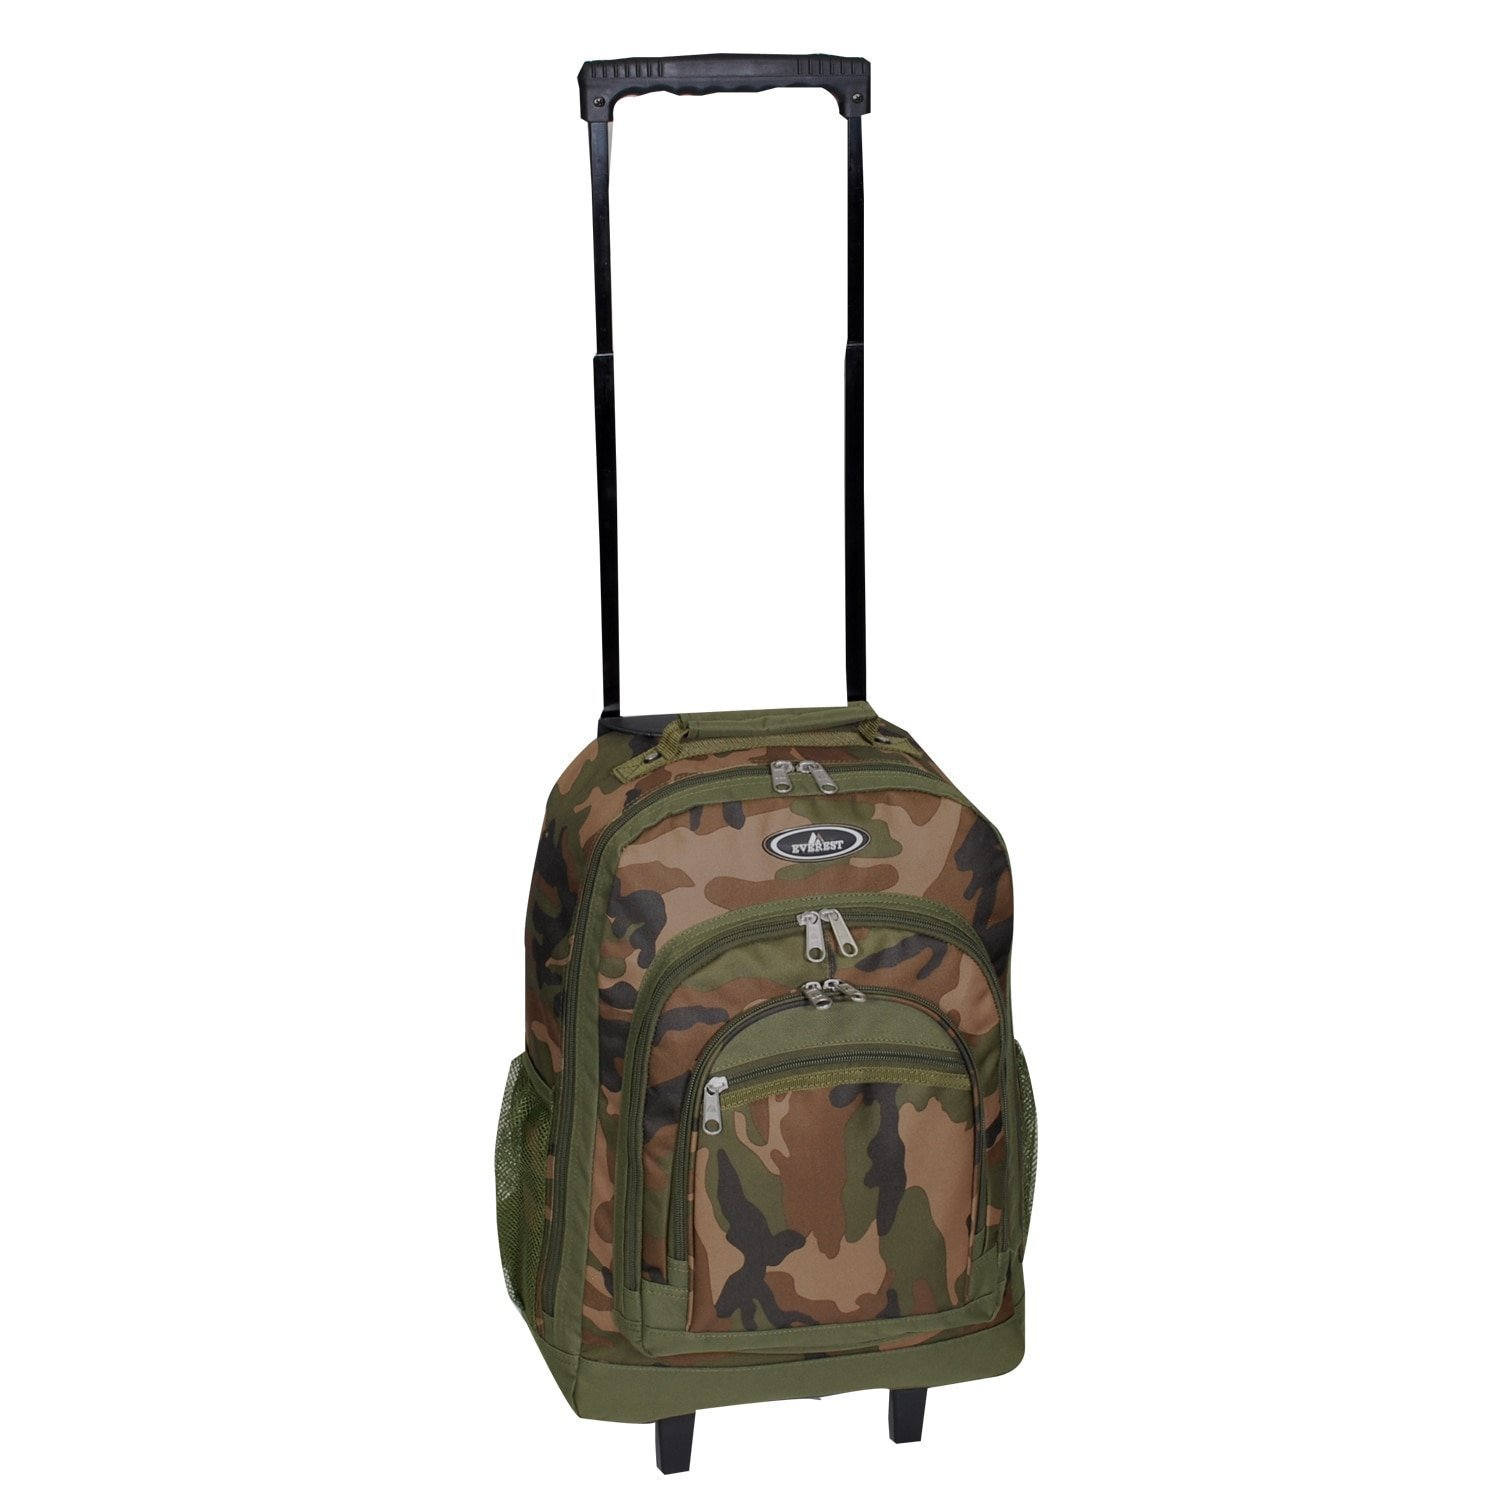 393f301e494 30%OFF Boys Green Brown Camouflage Themed Wheeled Upright Rolling Backpack,  Fashionable, Kids